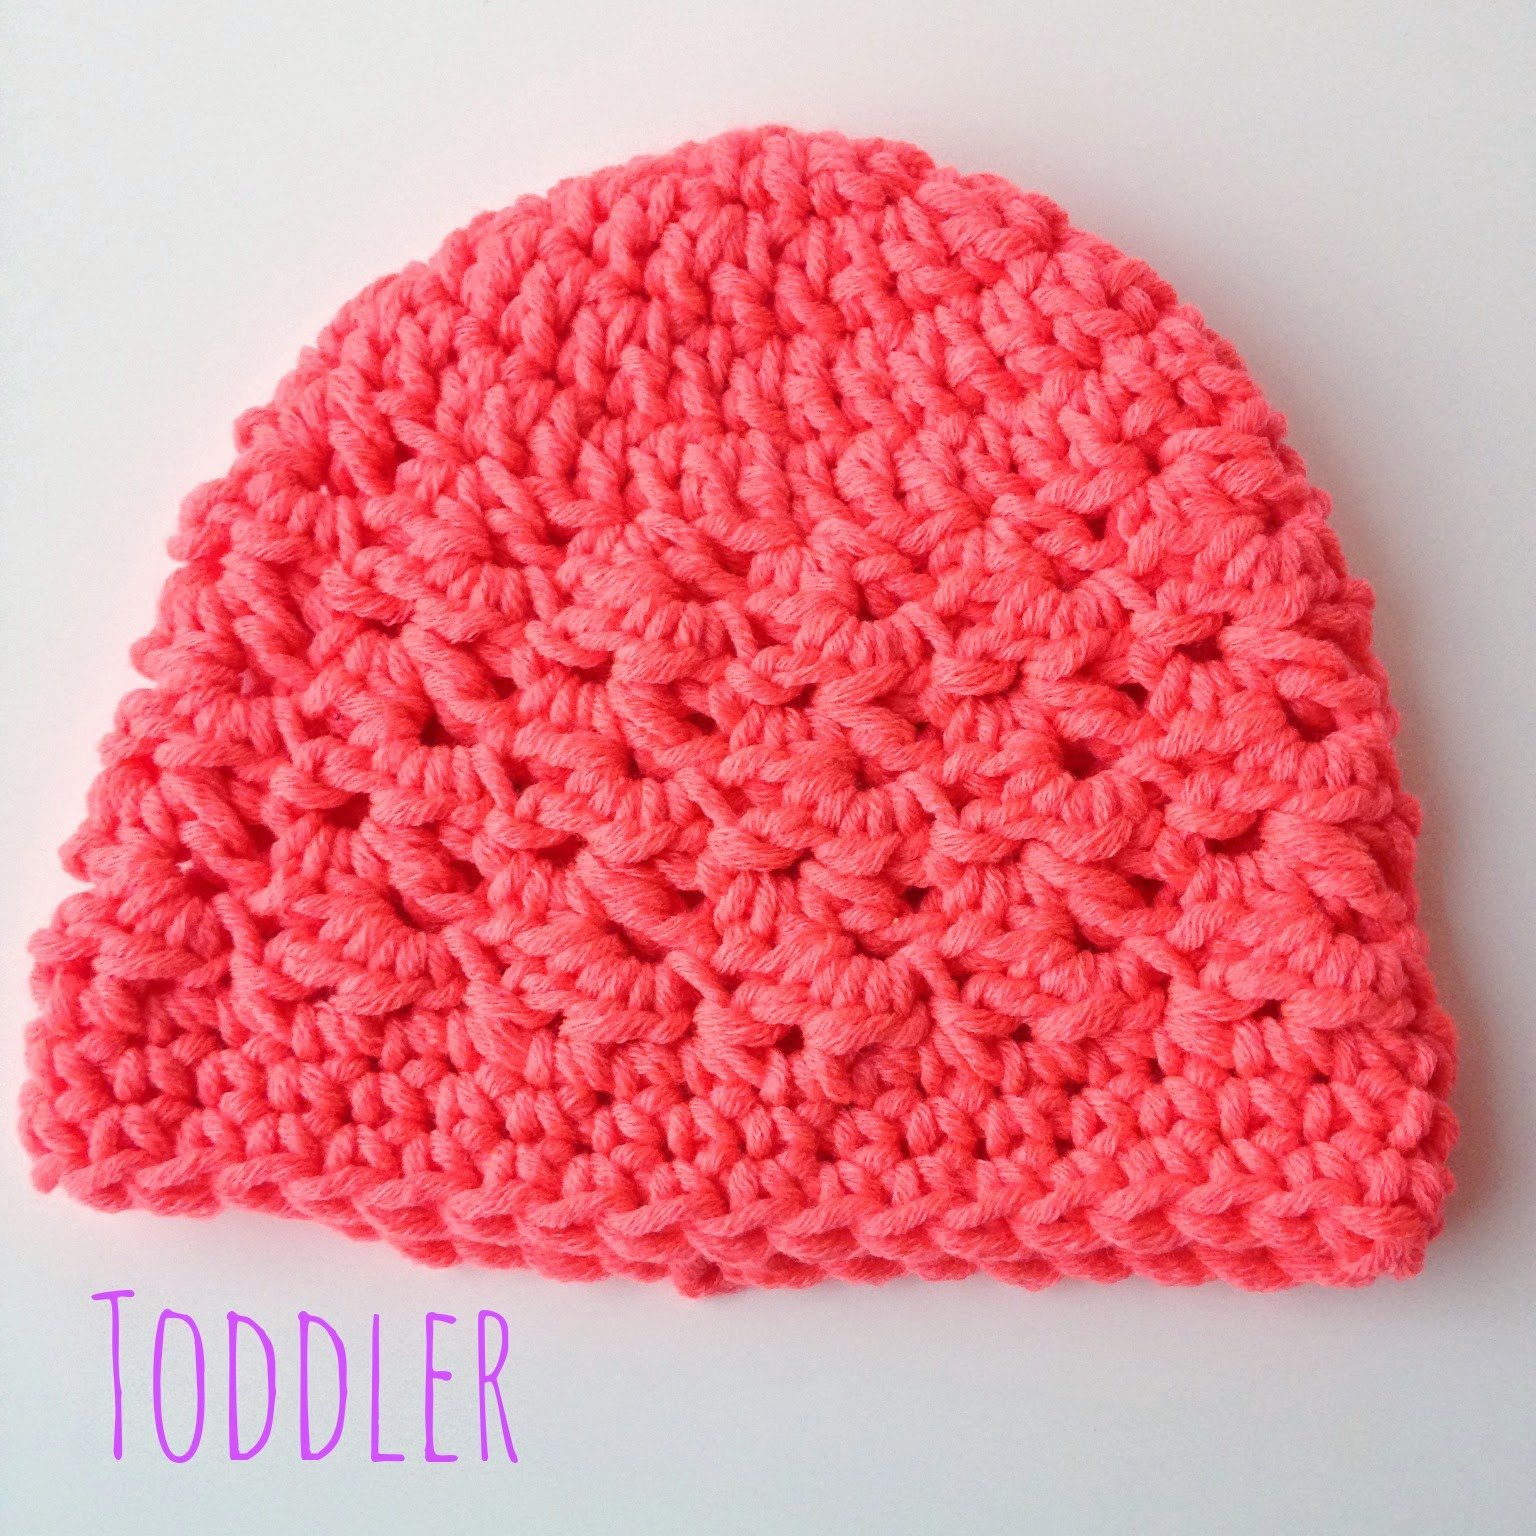 5 Little Monsters Textured Toddler Beanie Free Crochet